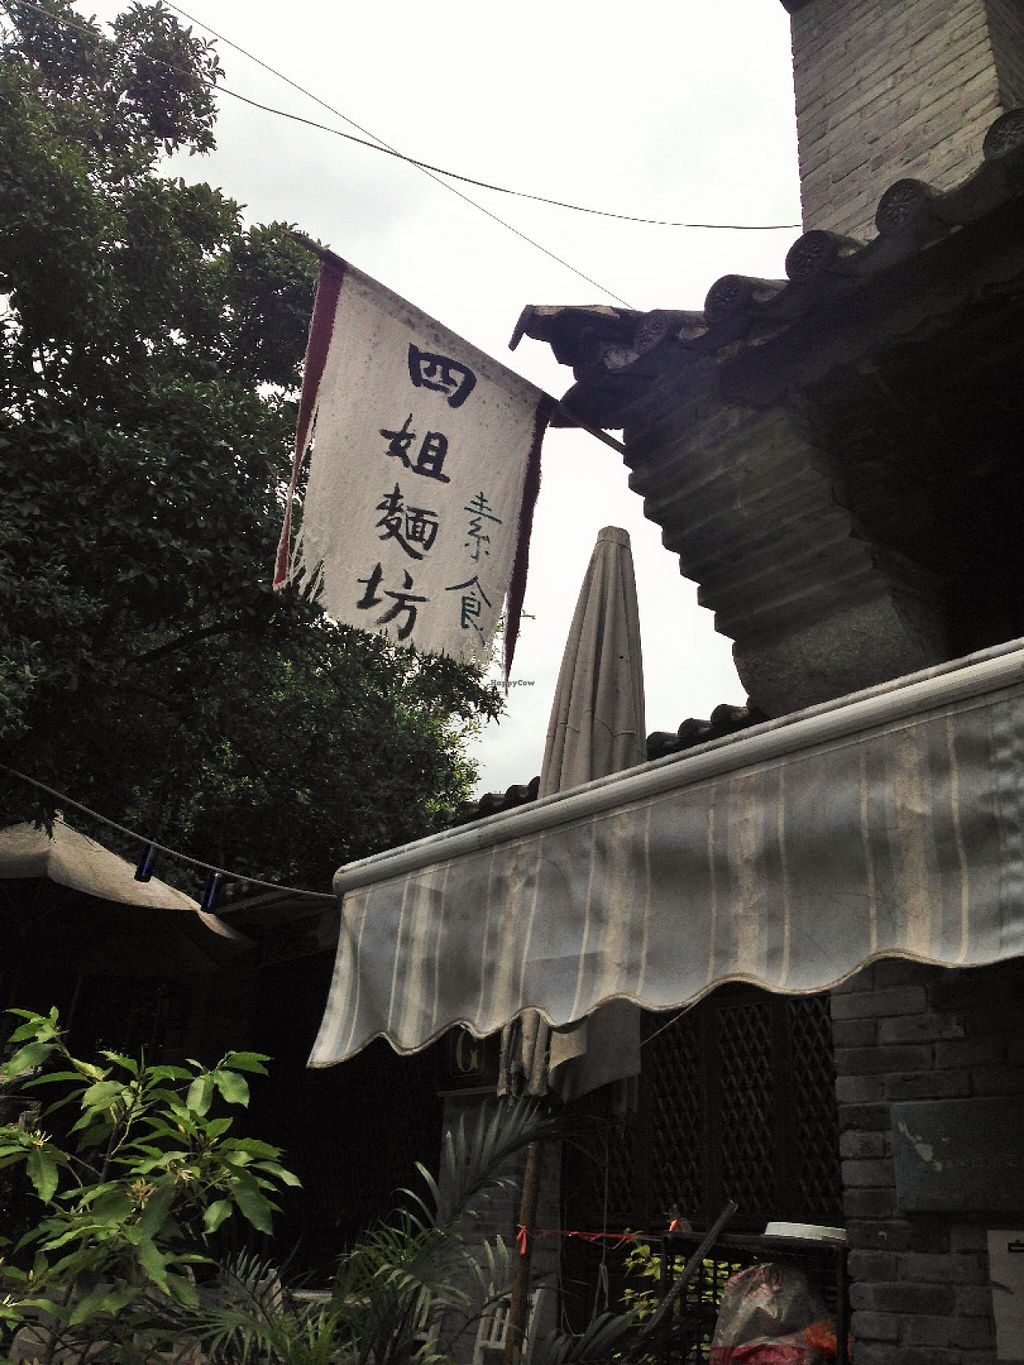 """Photo of CLOSED: Si Jie Noodle Shop  by <a href=""""/members/profile/Stevie"""">Stevie</a> <br/>Sign above <br/> June 29, 2016  - <a href='/contact/abuse/image/75767/156713'>Report</a>"""